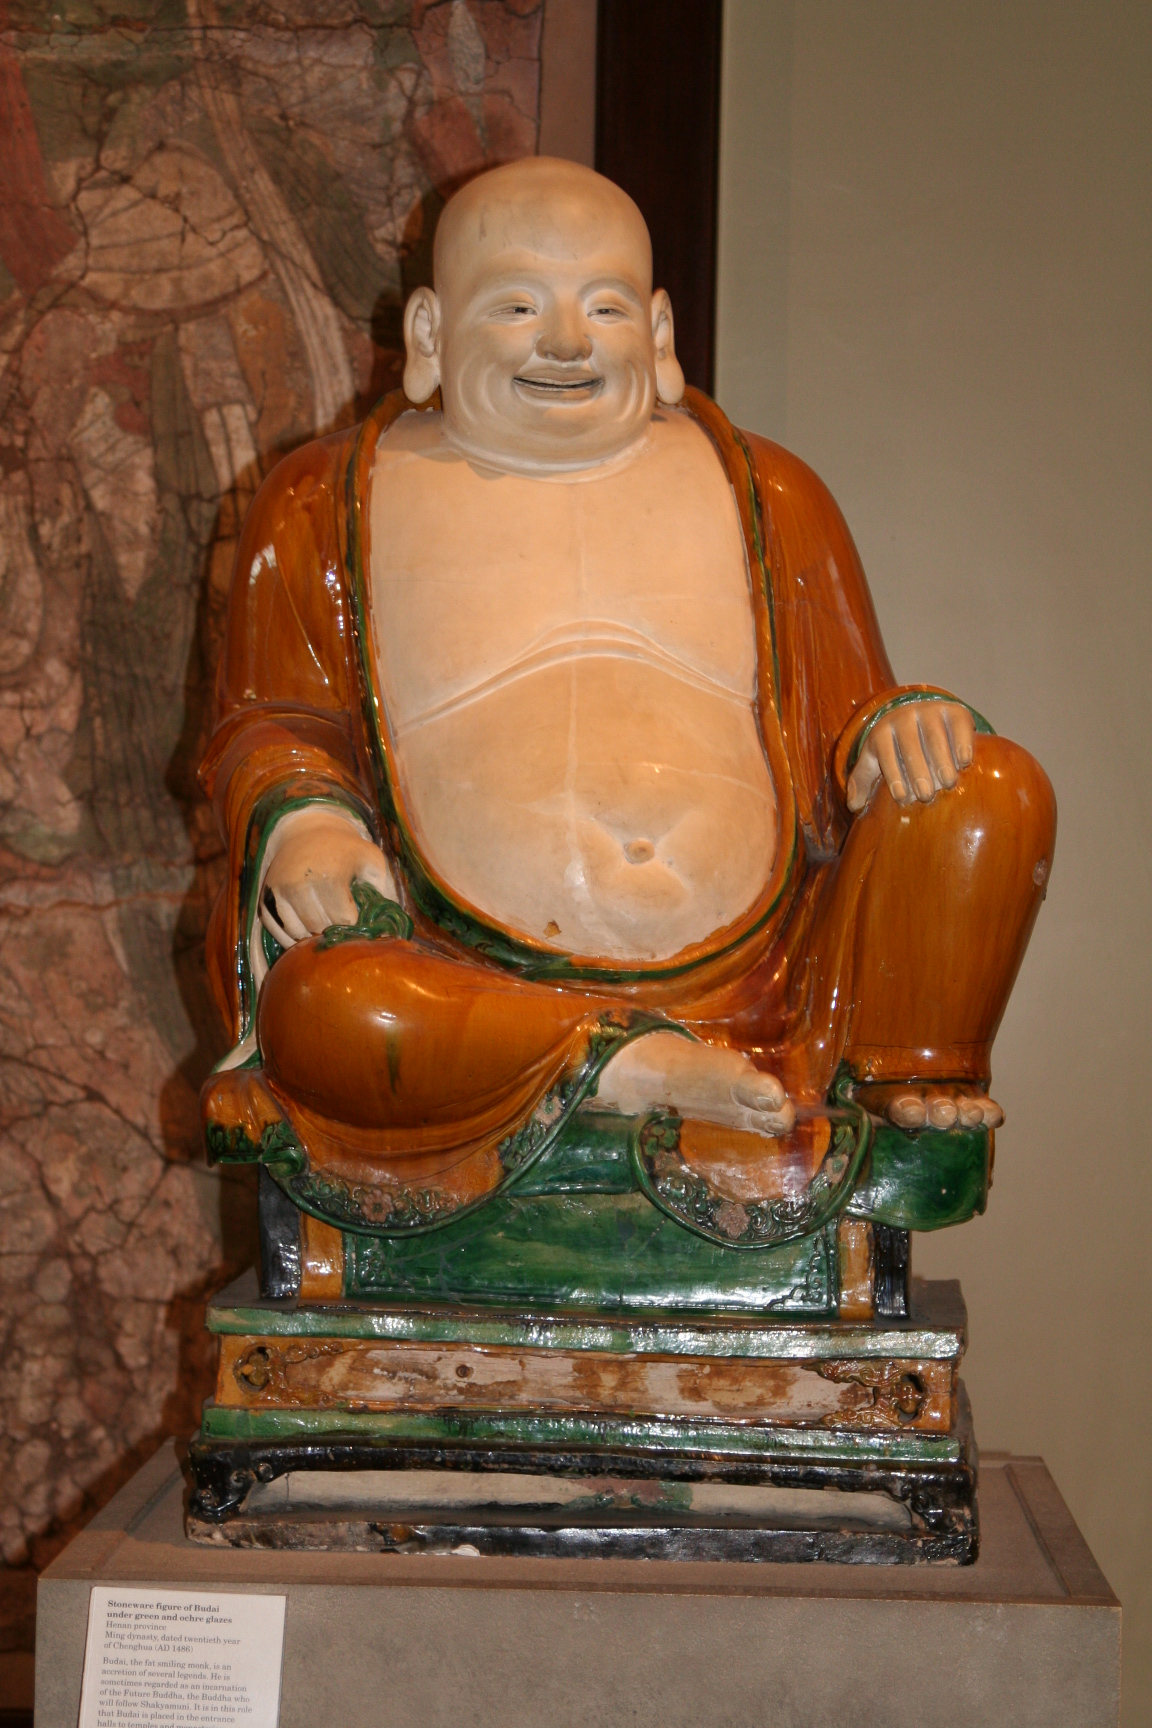 wood dale buddhist personals Events, coupons, classifieds here are some of the great people who sent help to houston after hurricane harvey, it's nice to know how many people will help you in a.